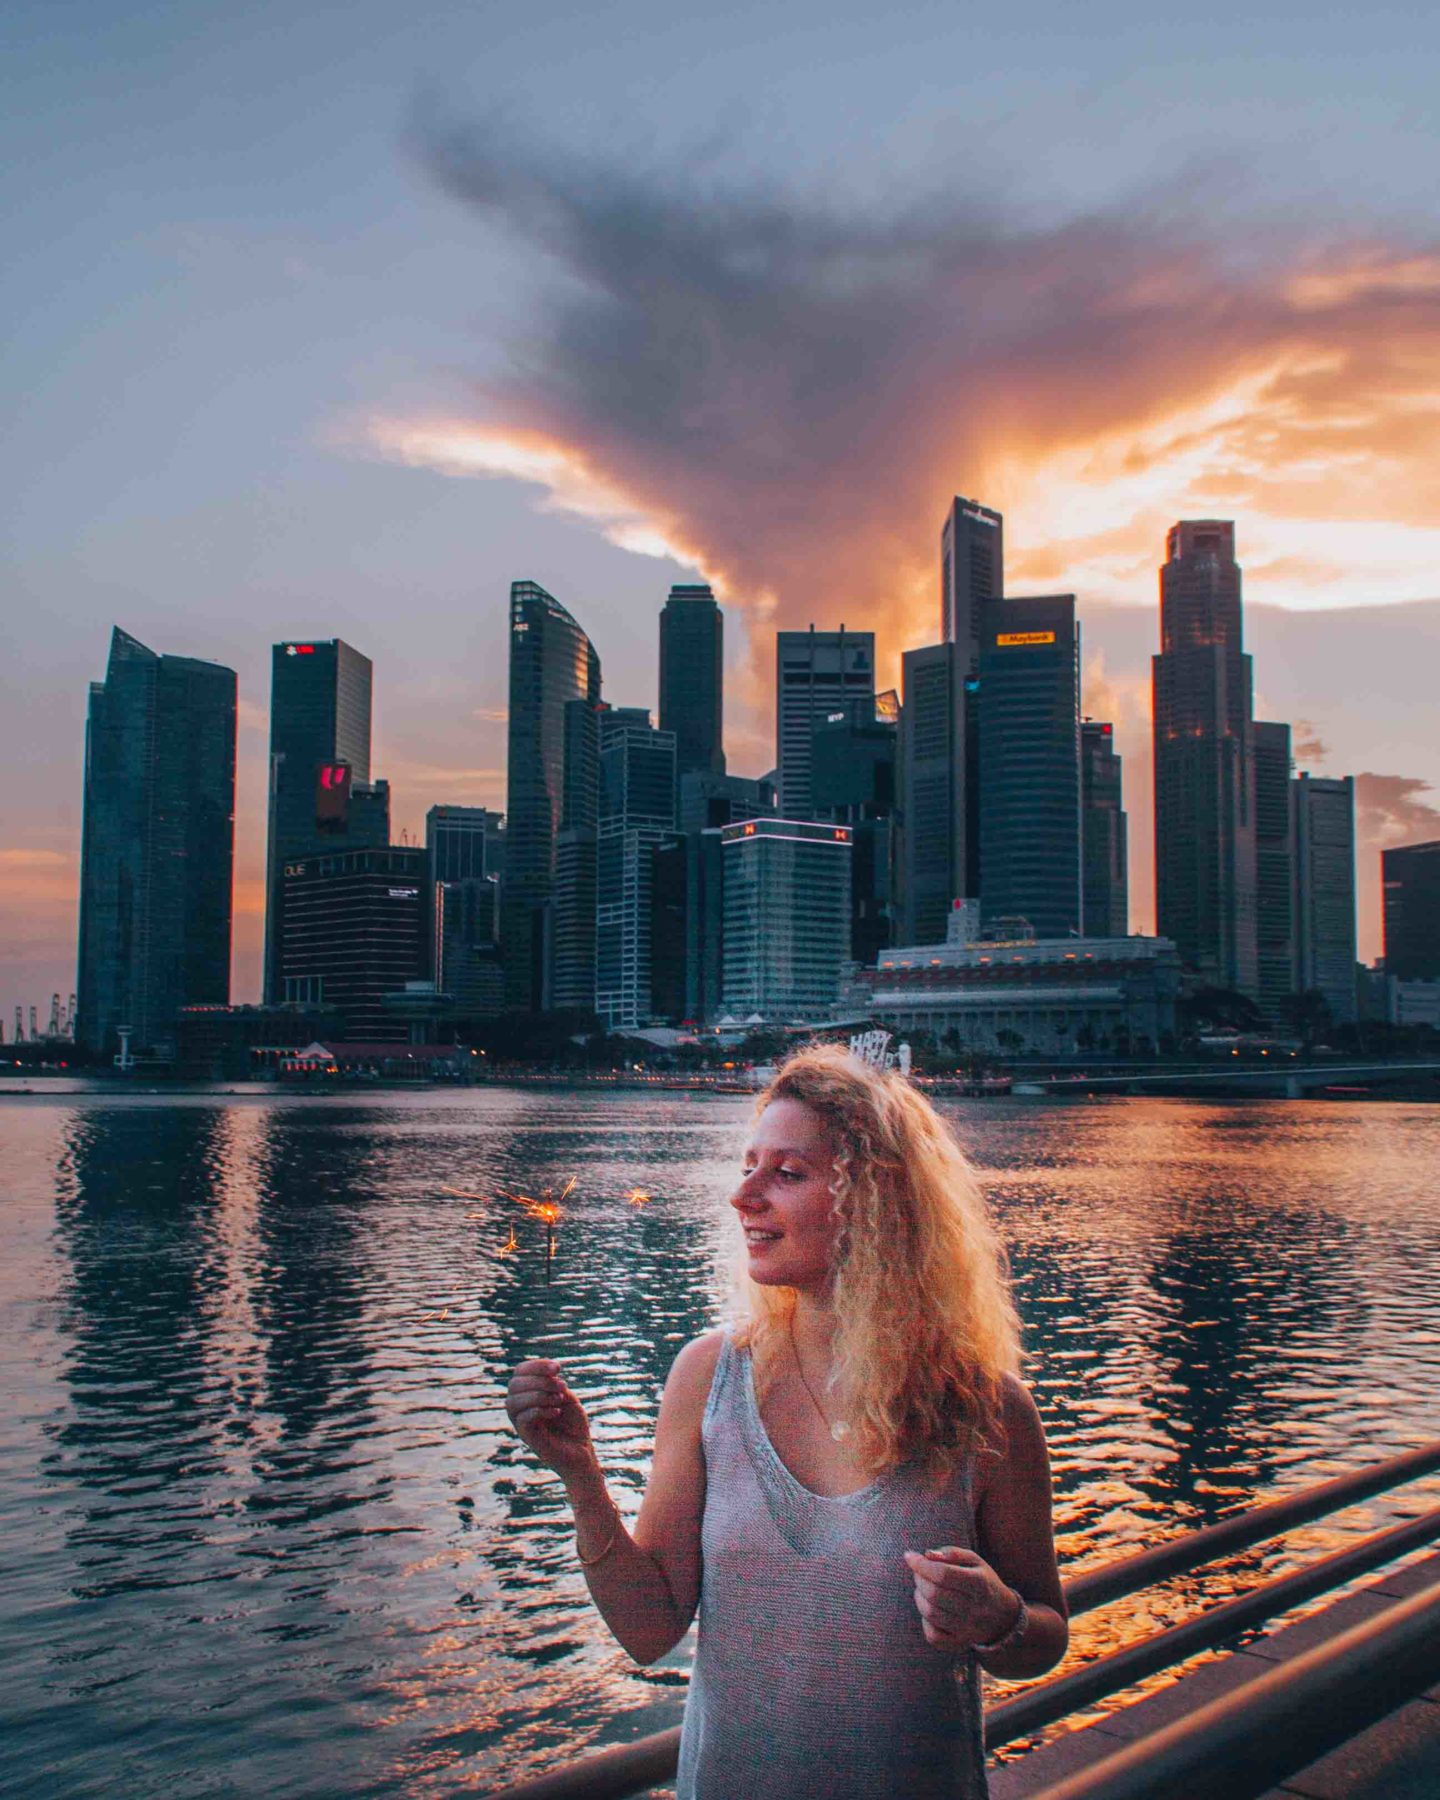 Sunset on Marina Bay, instagrammable spot in Singapore